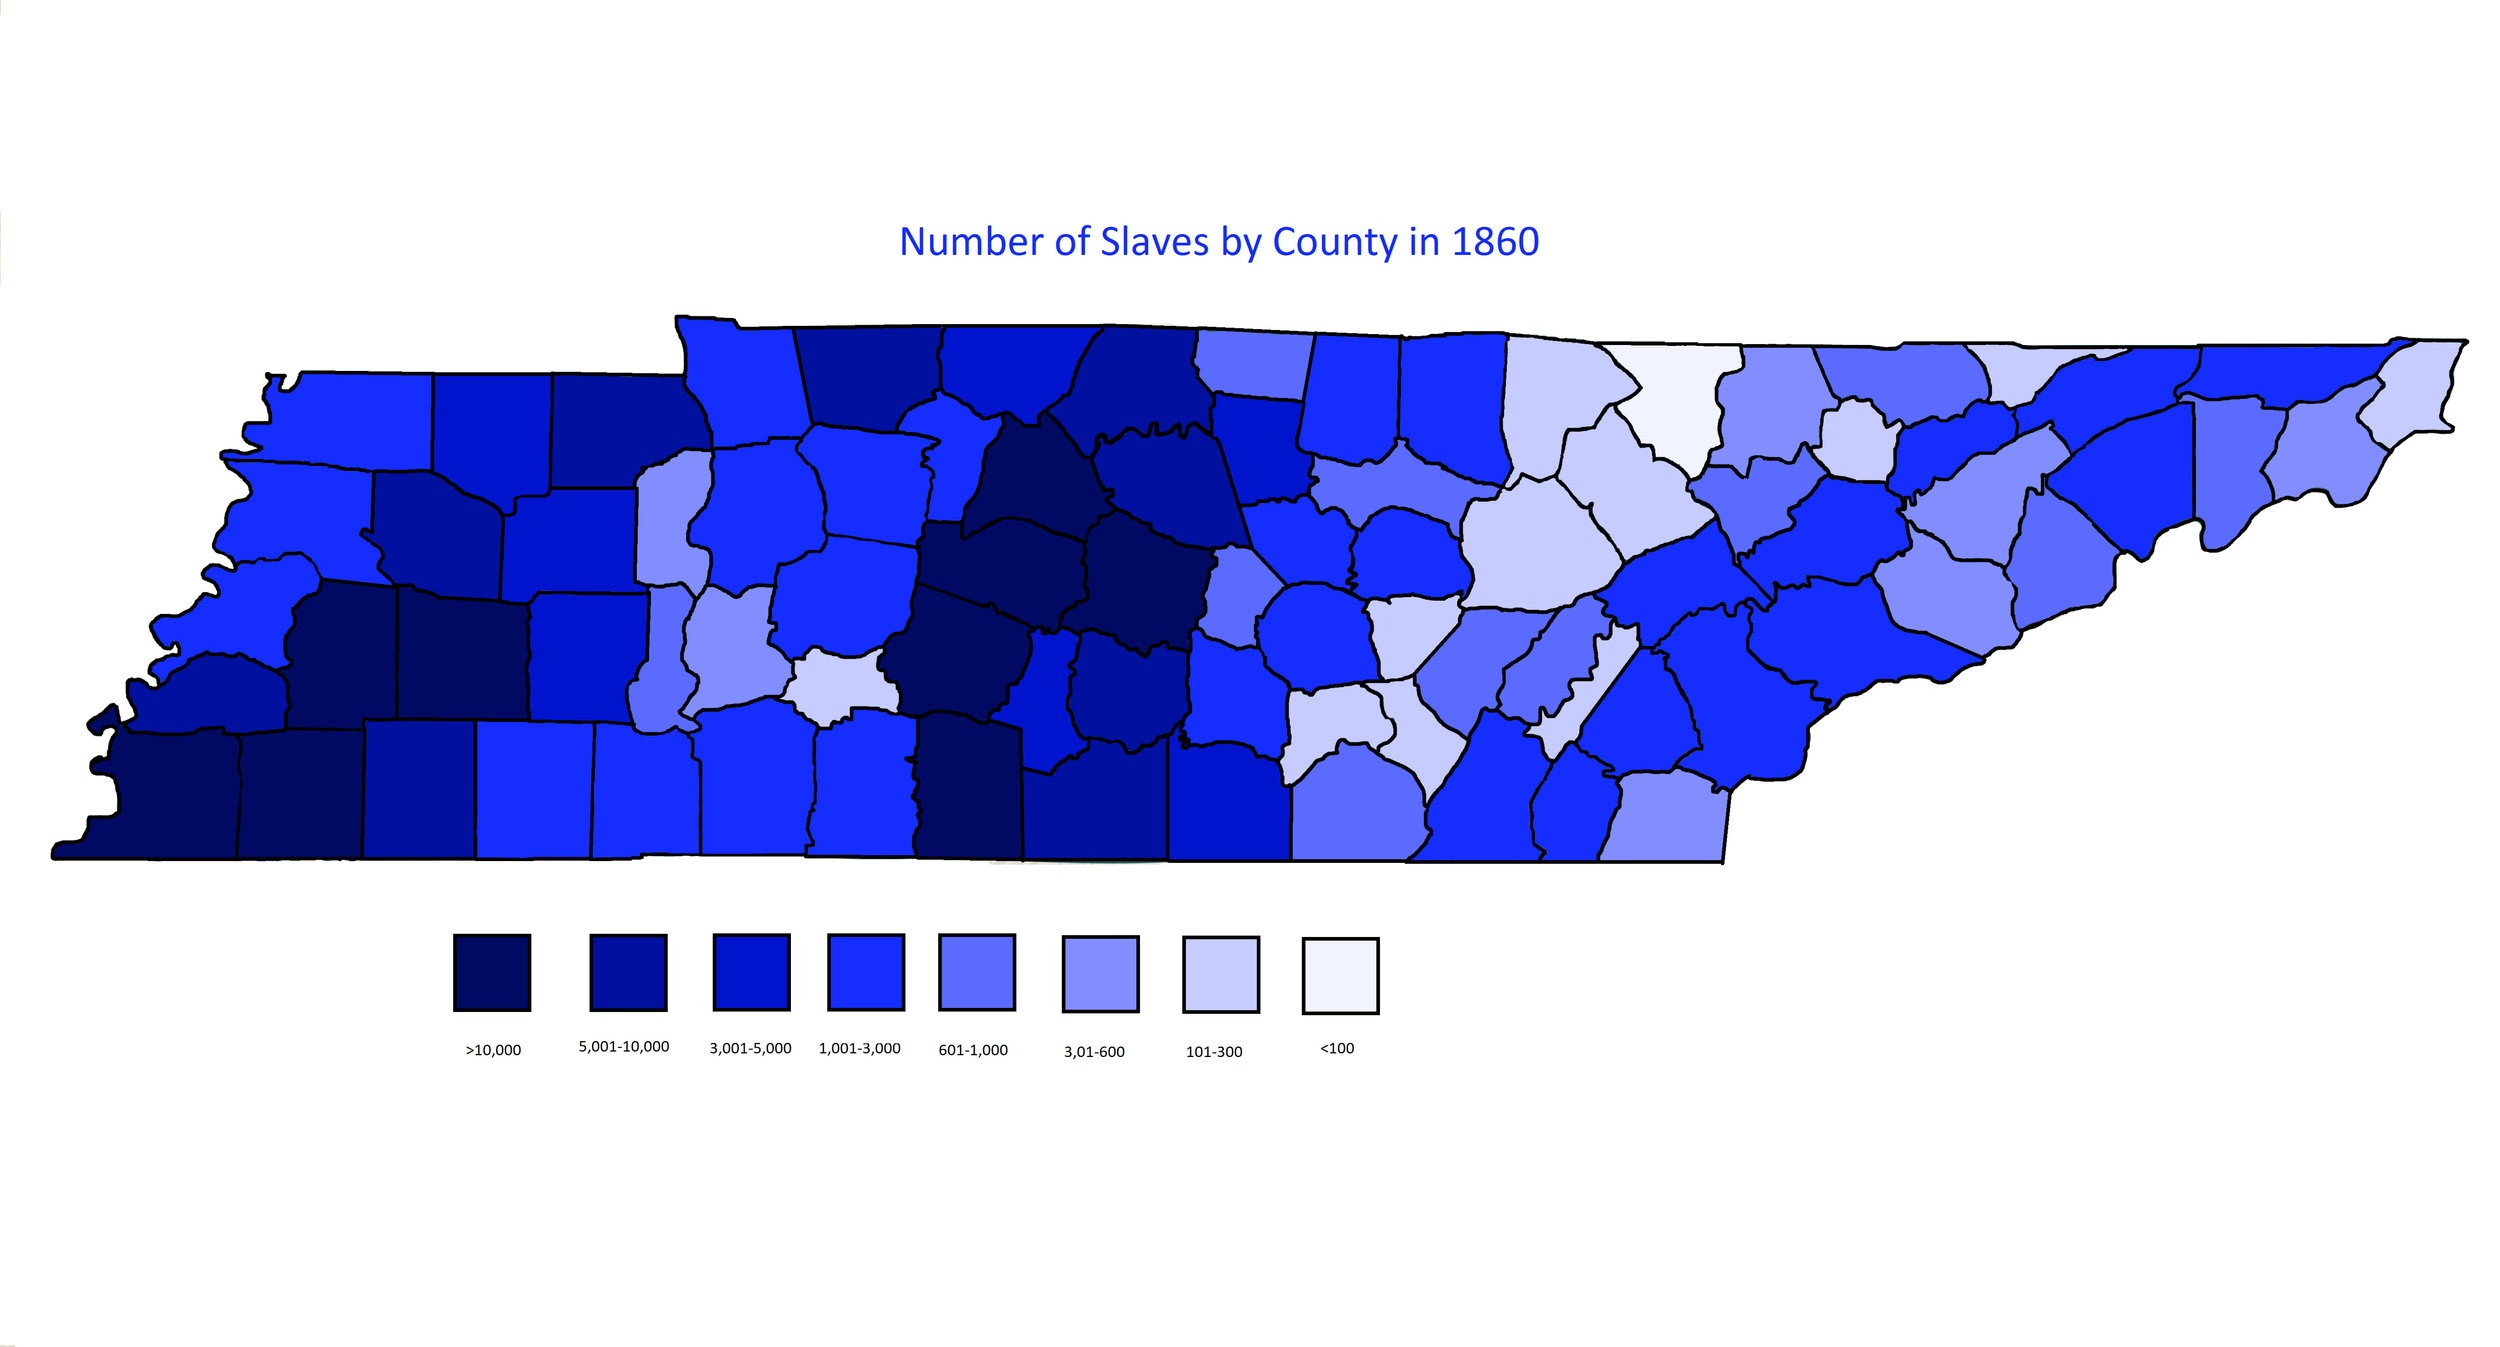 Number of Slaves by County in Tennessee in 1860